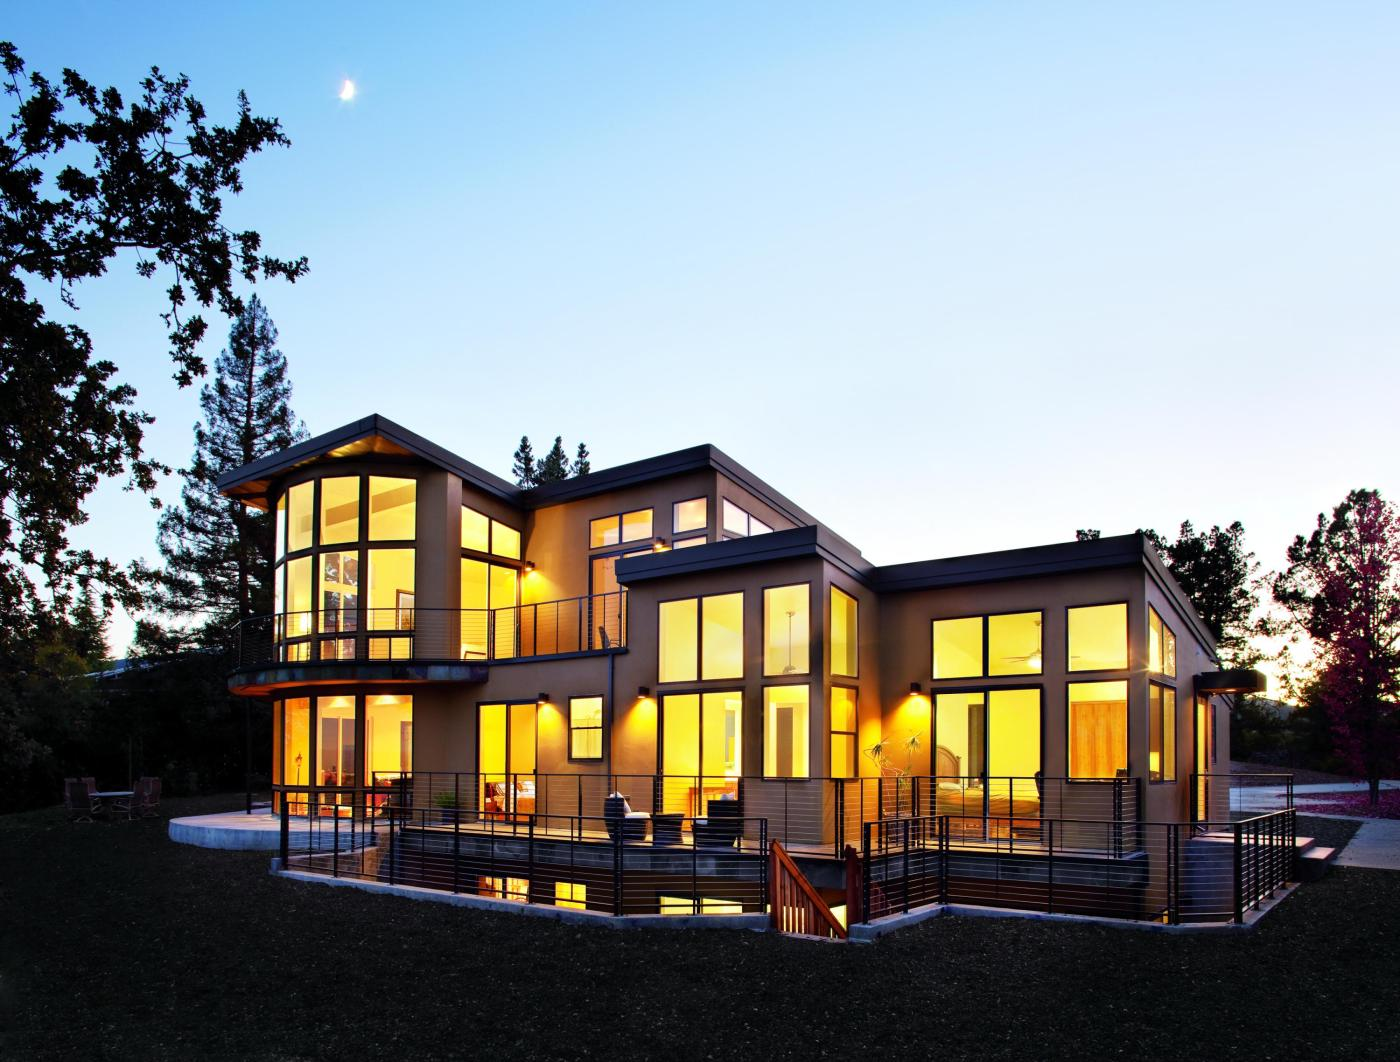 Remodeling Your Home? Start From the Outside. – Inspired by Marvin